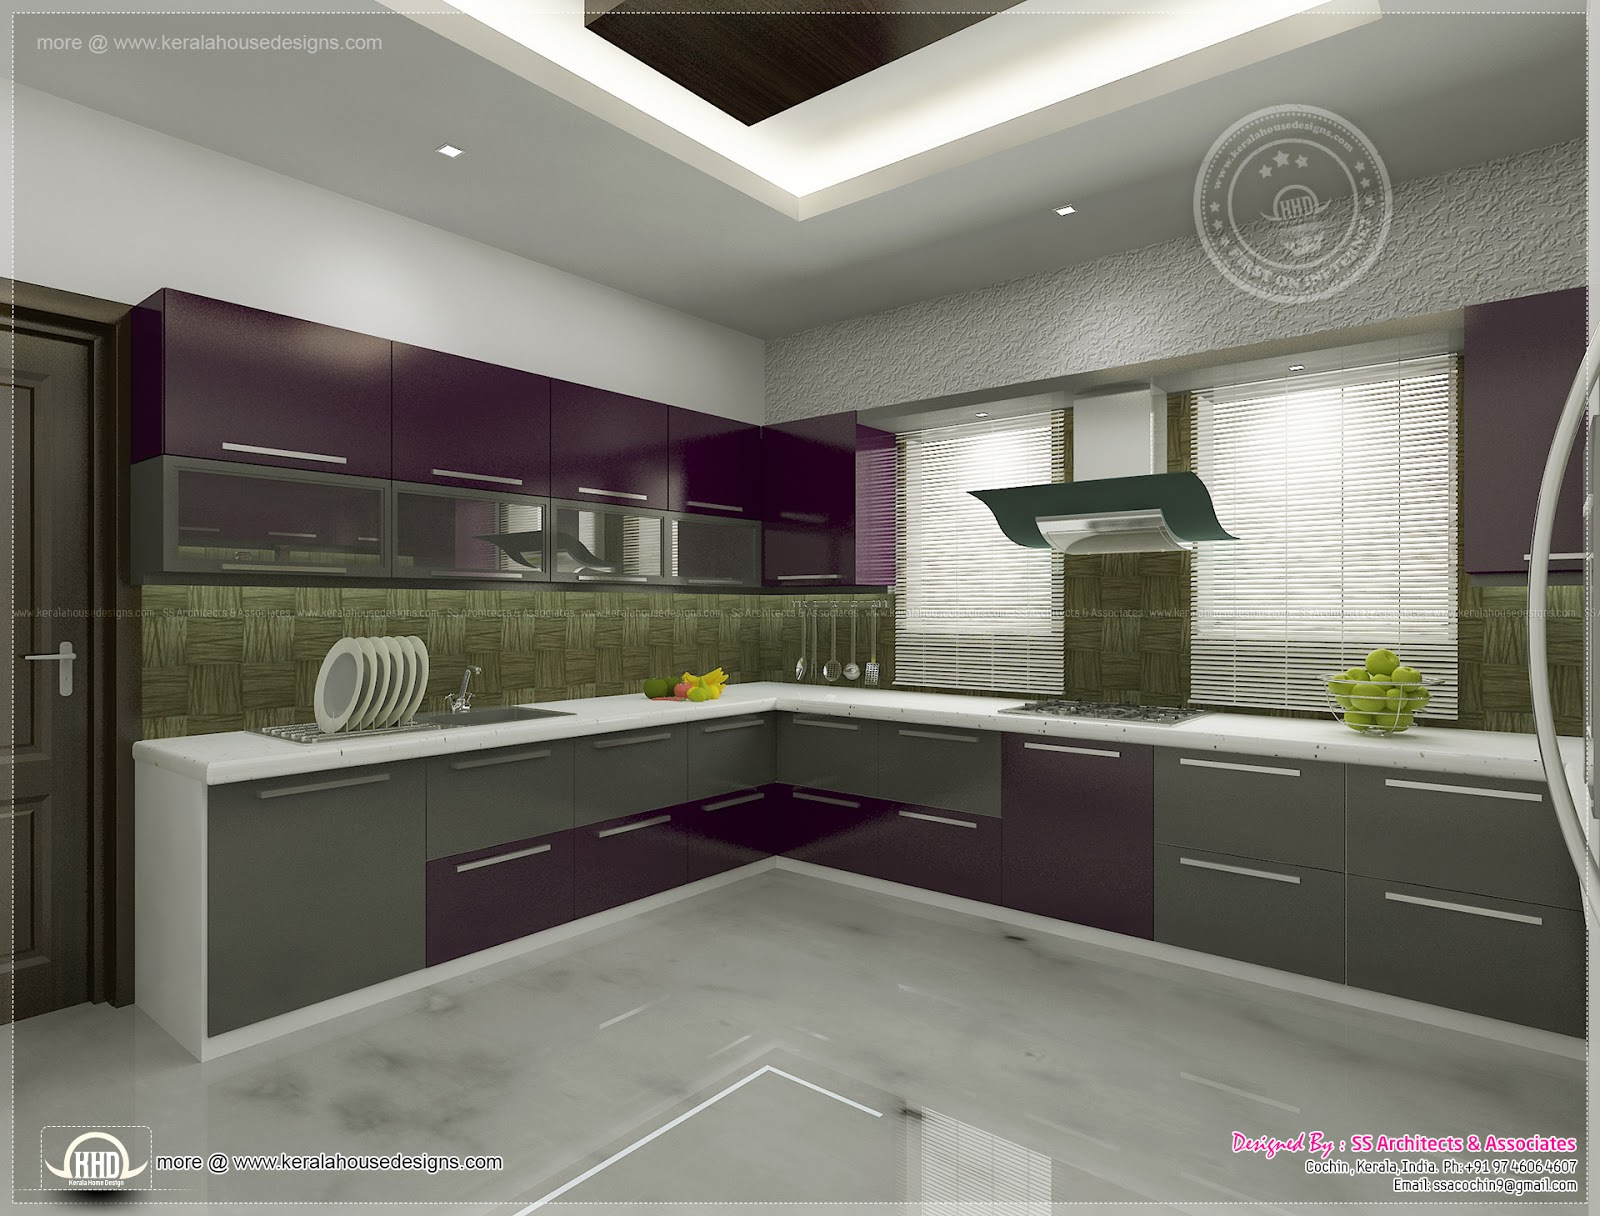 Kitchen interior views by ss architects cochin kerala for Photo gallery of interior designs